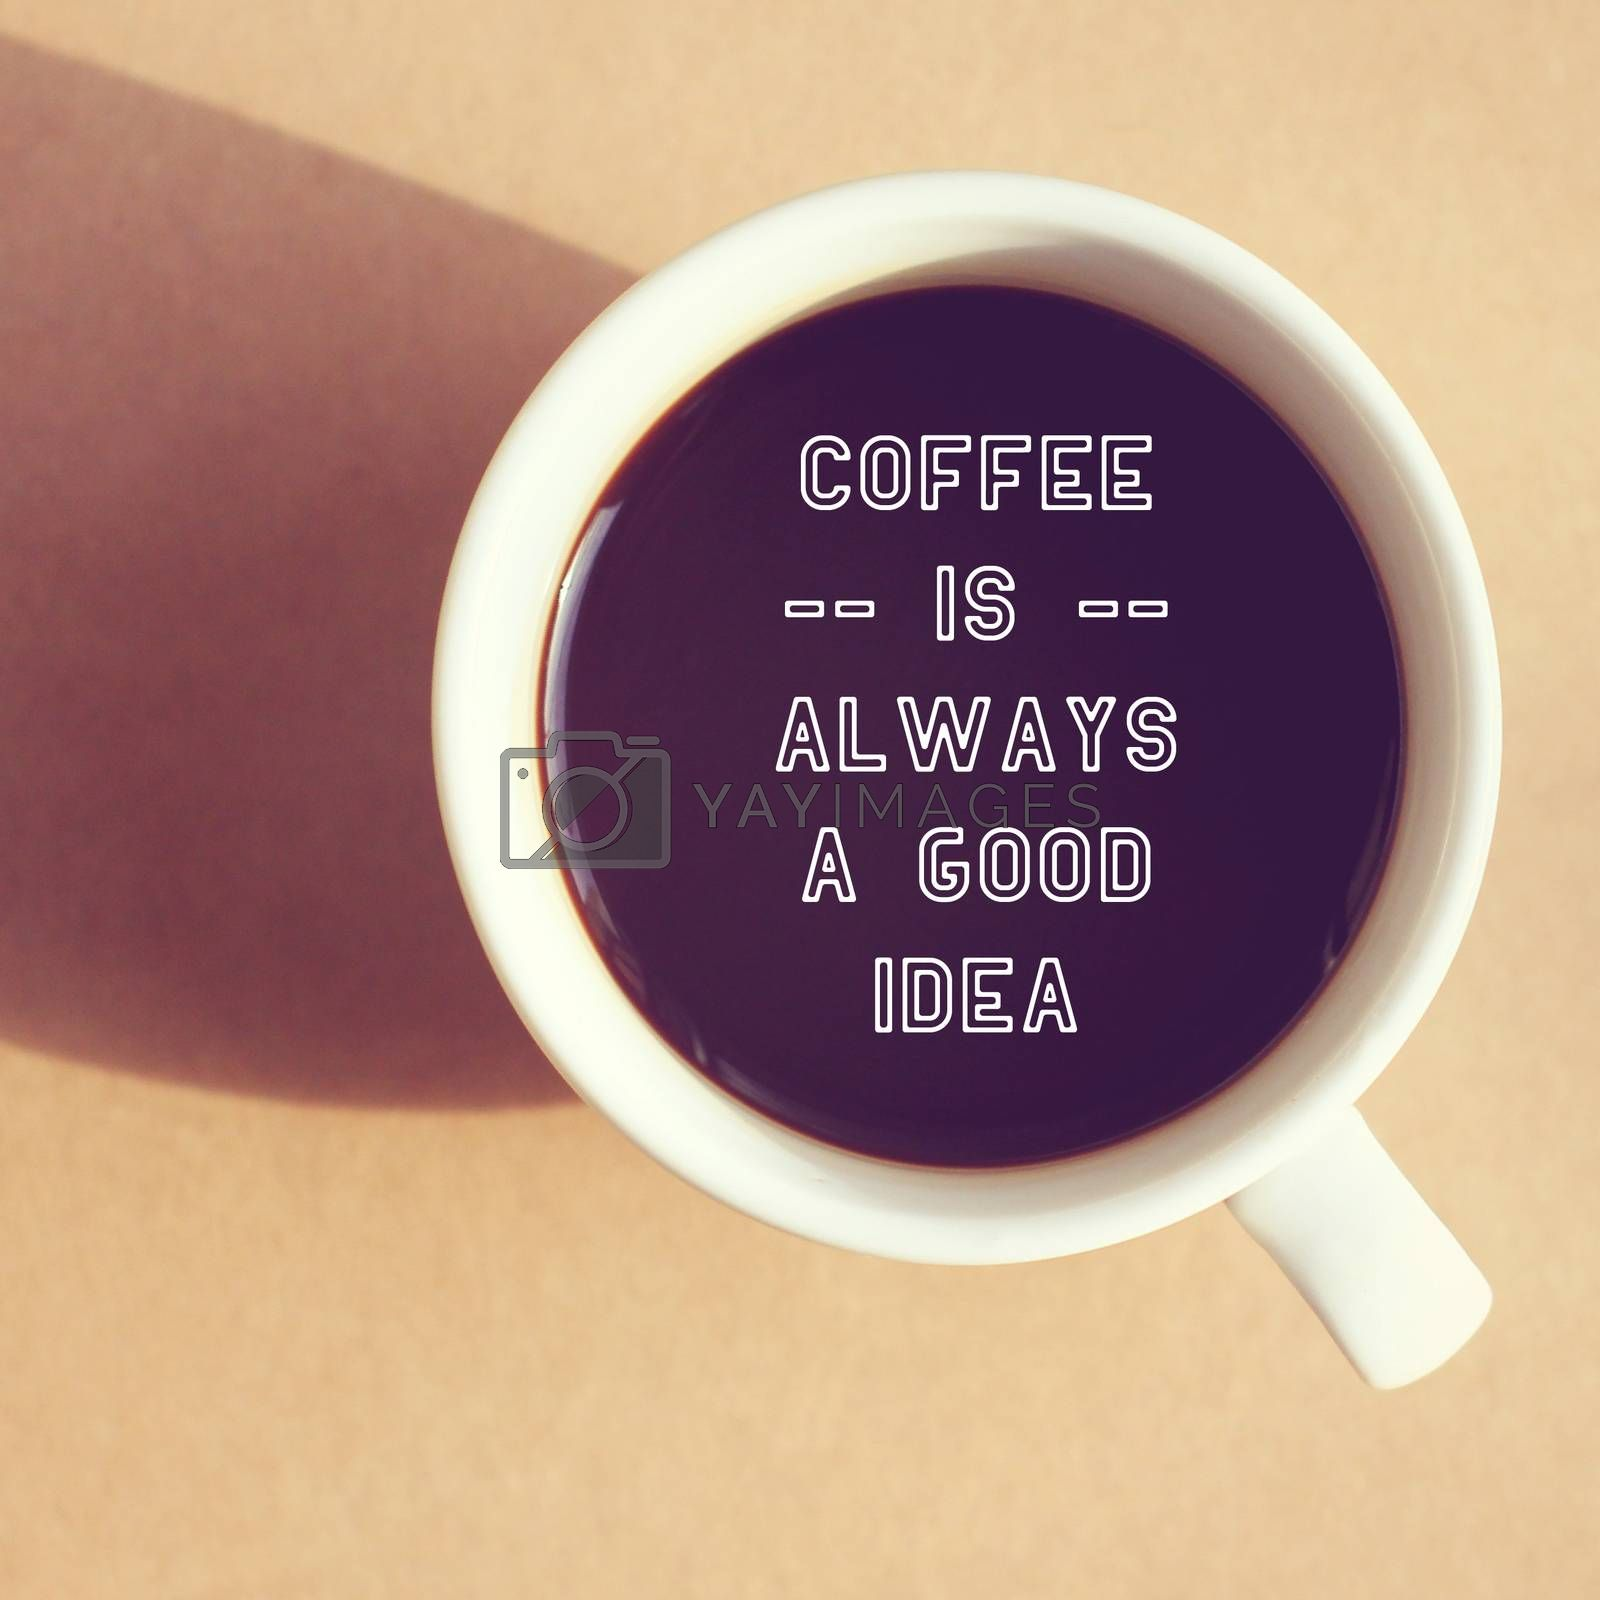 Inspirational quote on cup of coffee with retro filter effect